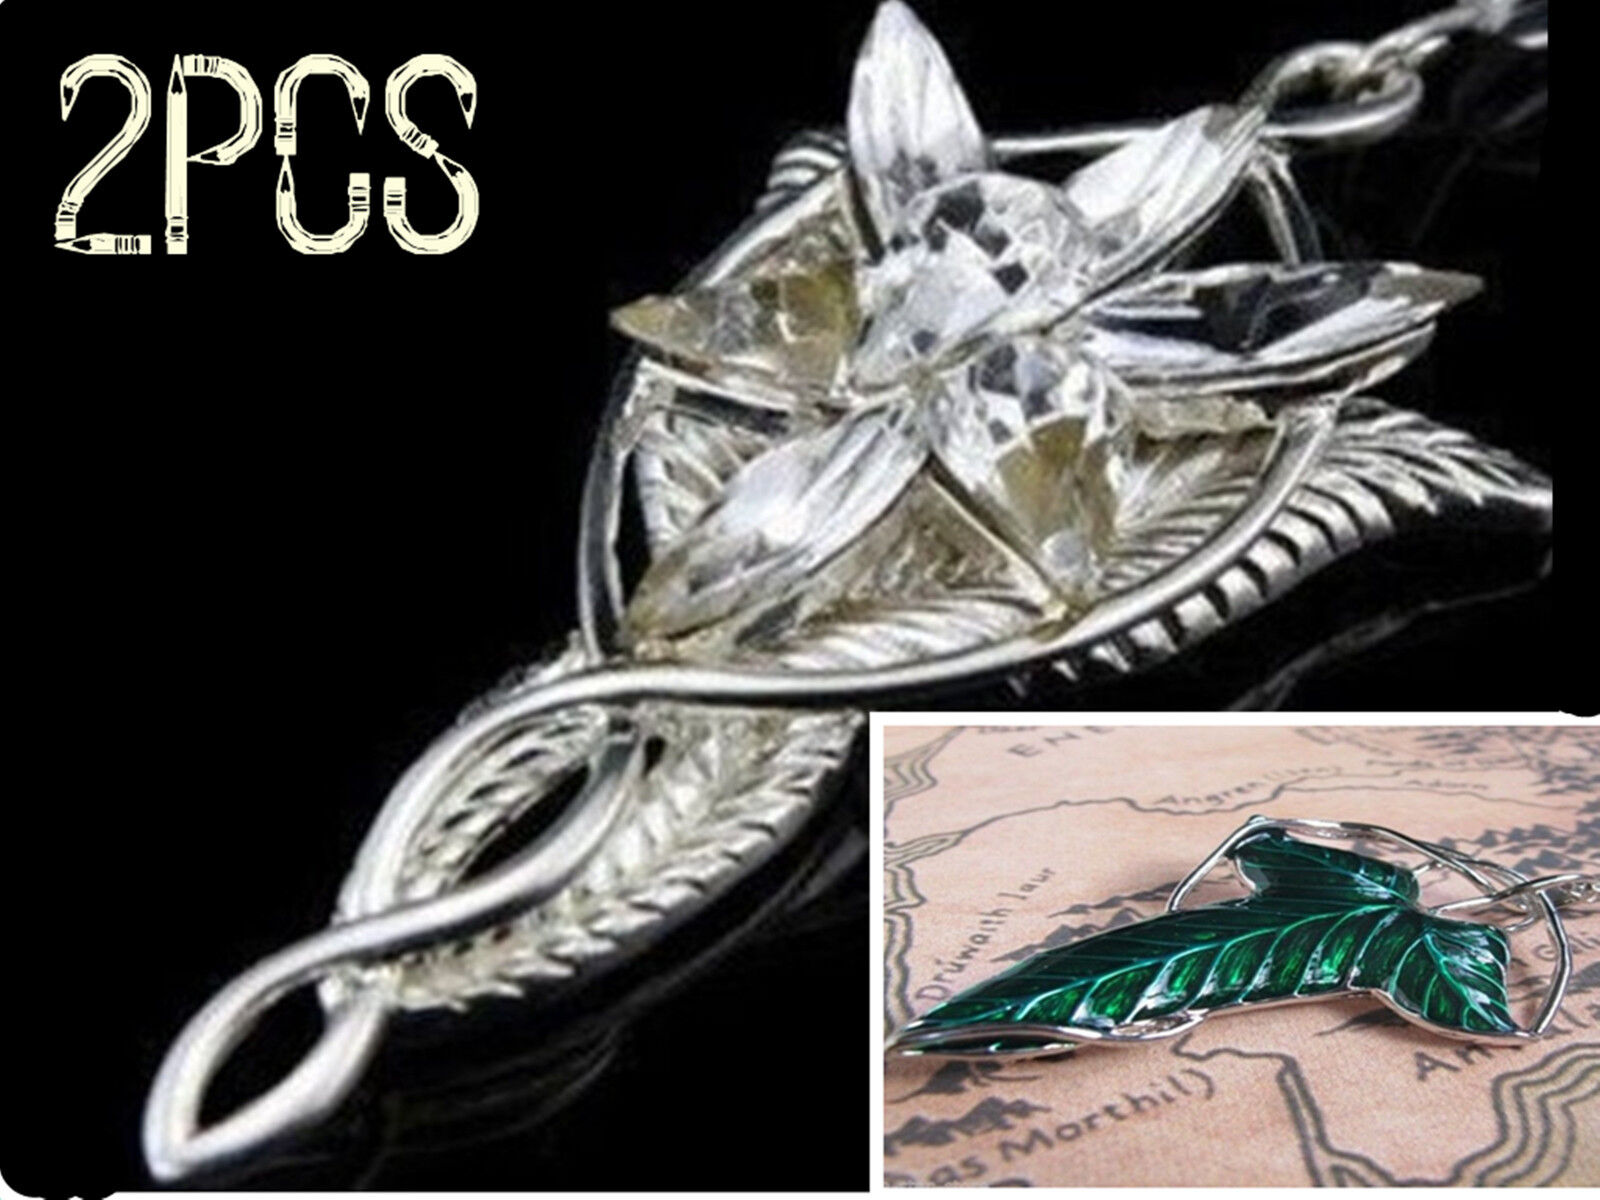 2xset lotr lord of the rings elven leaf brooch arwen